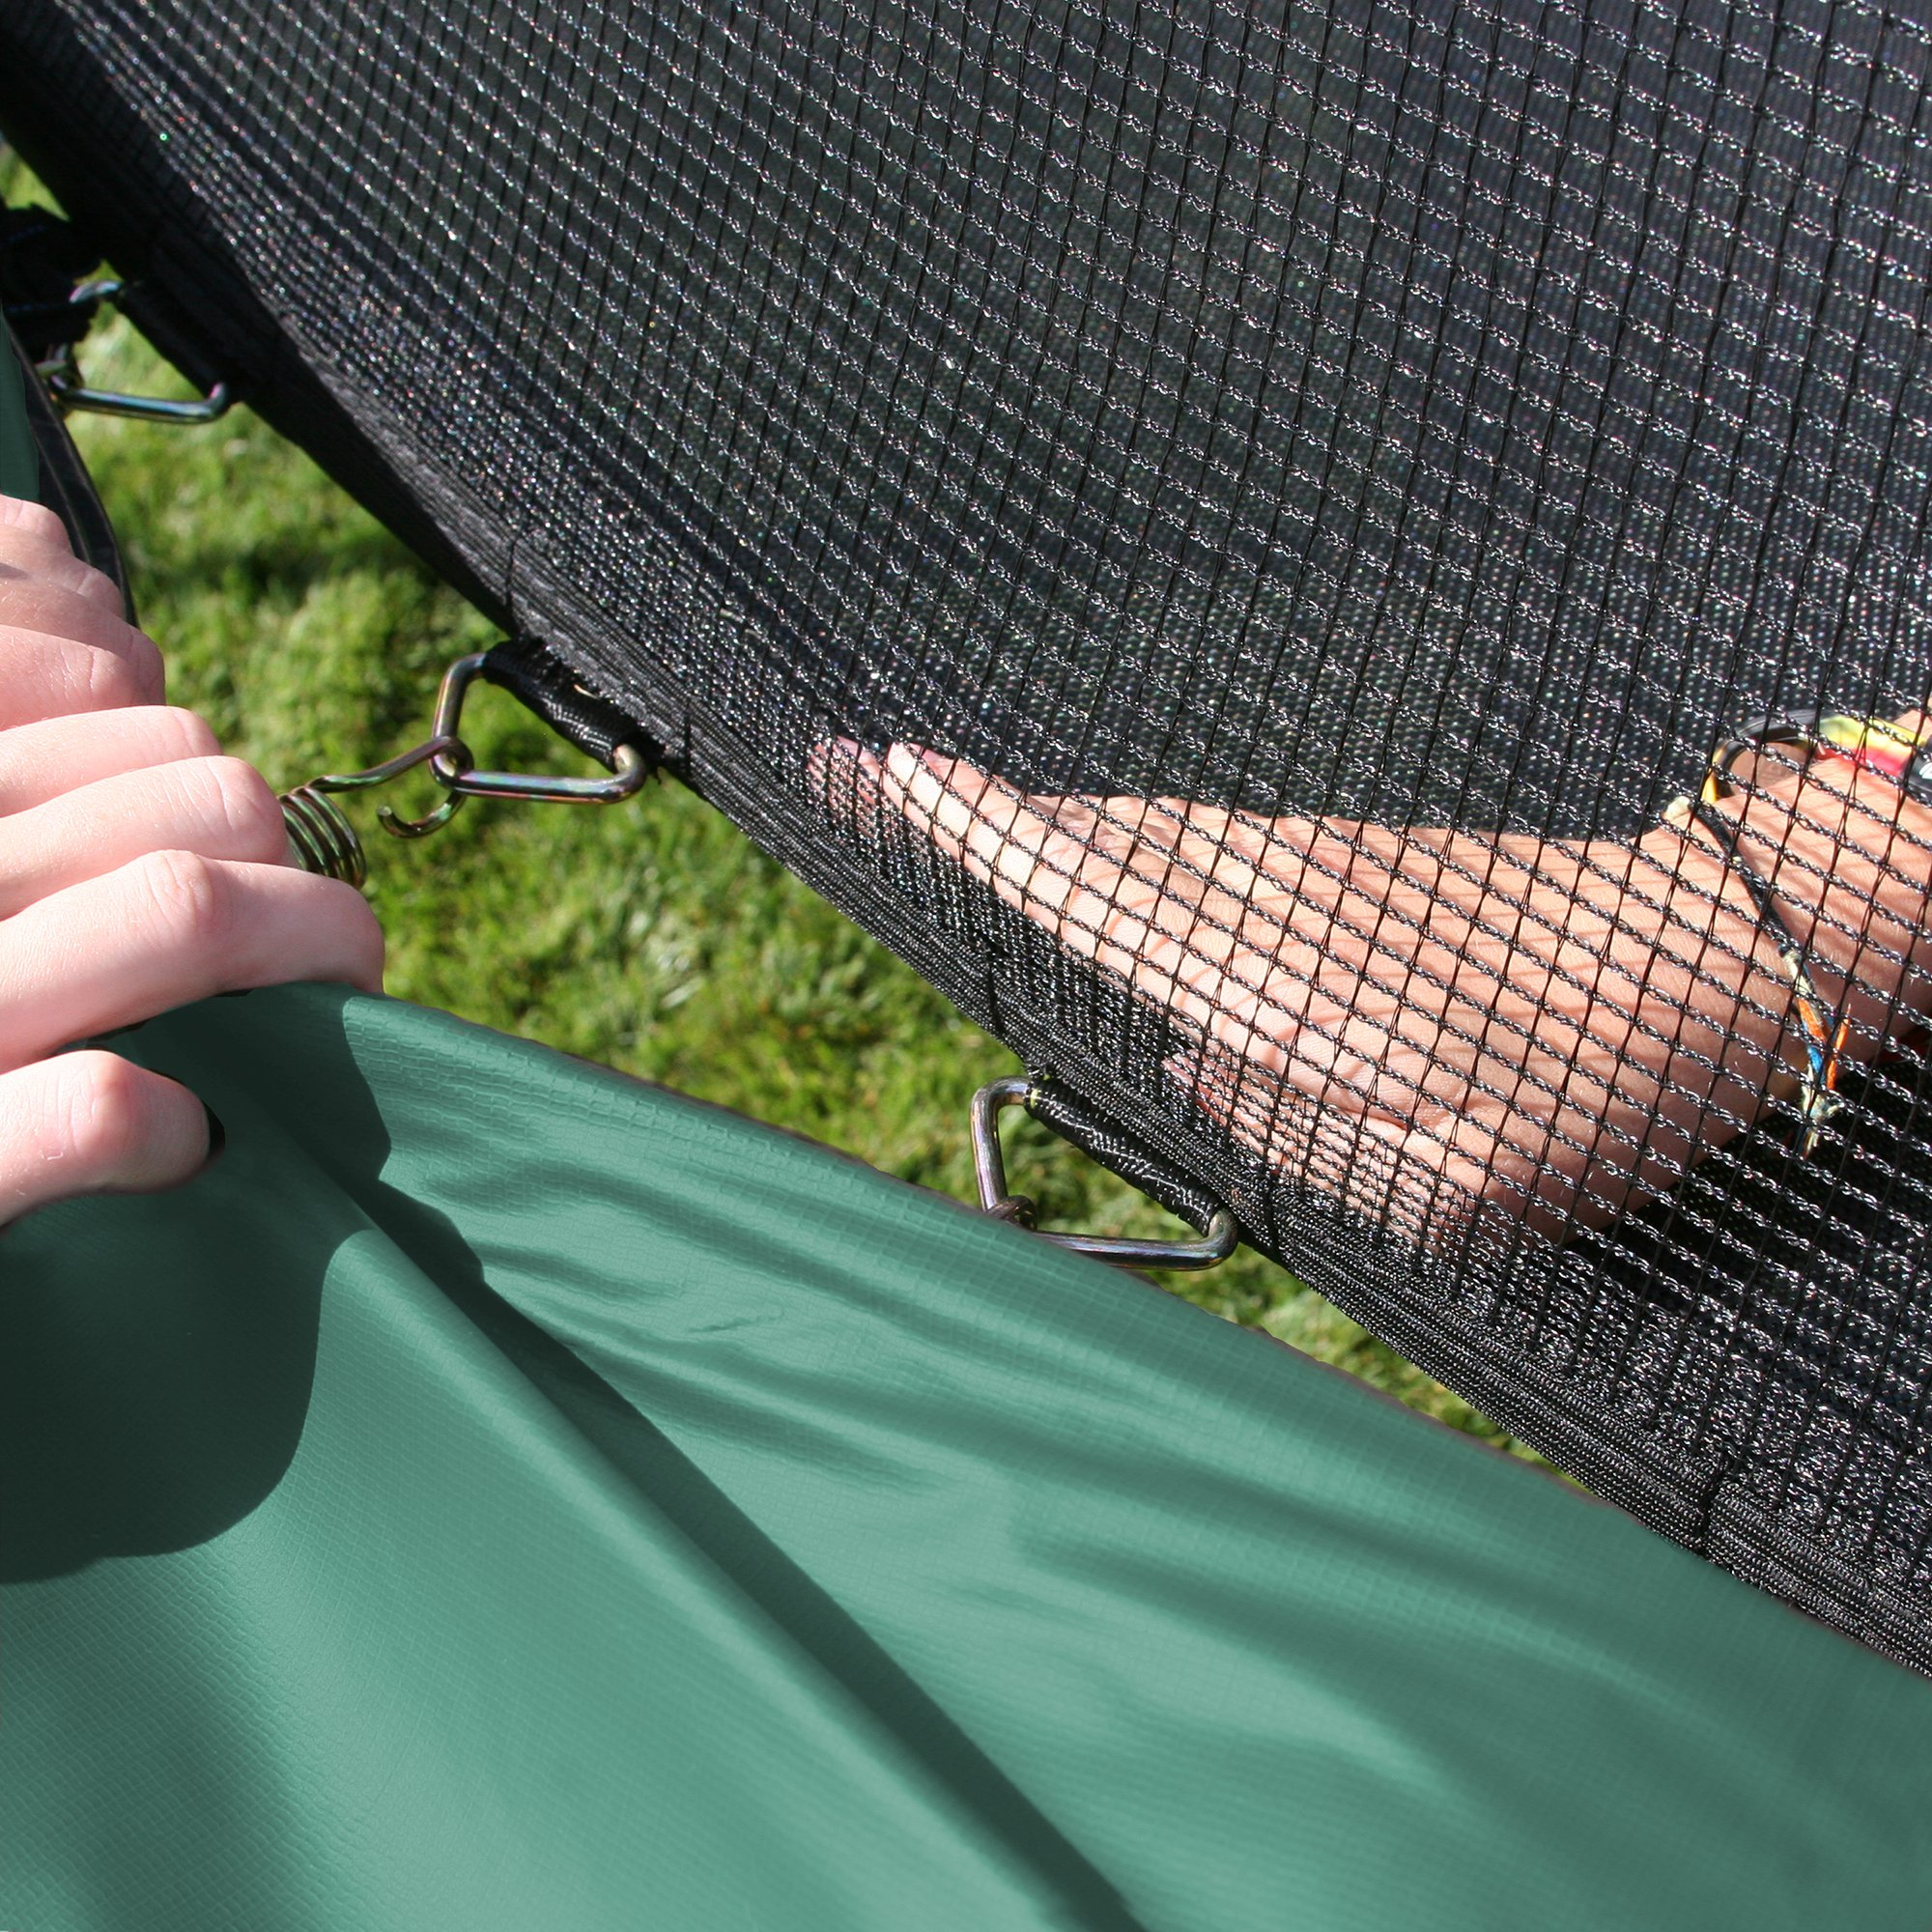 Skywalker 12-Feet Round Trampoline and Enclosure Combo with Spring Pad, Green by Skywalker Trampolines (Image #4)